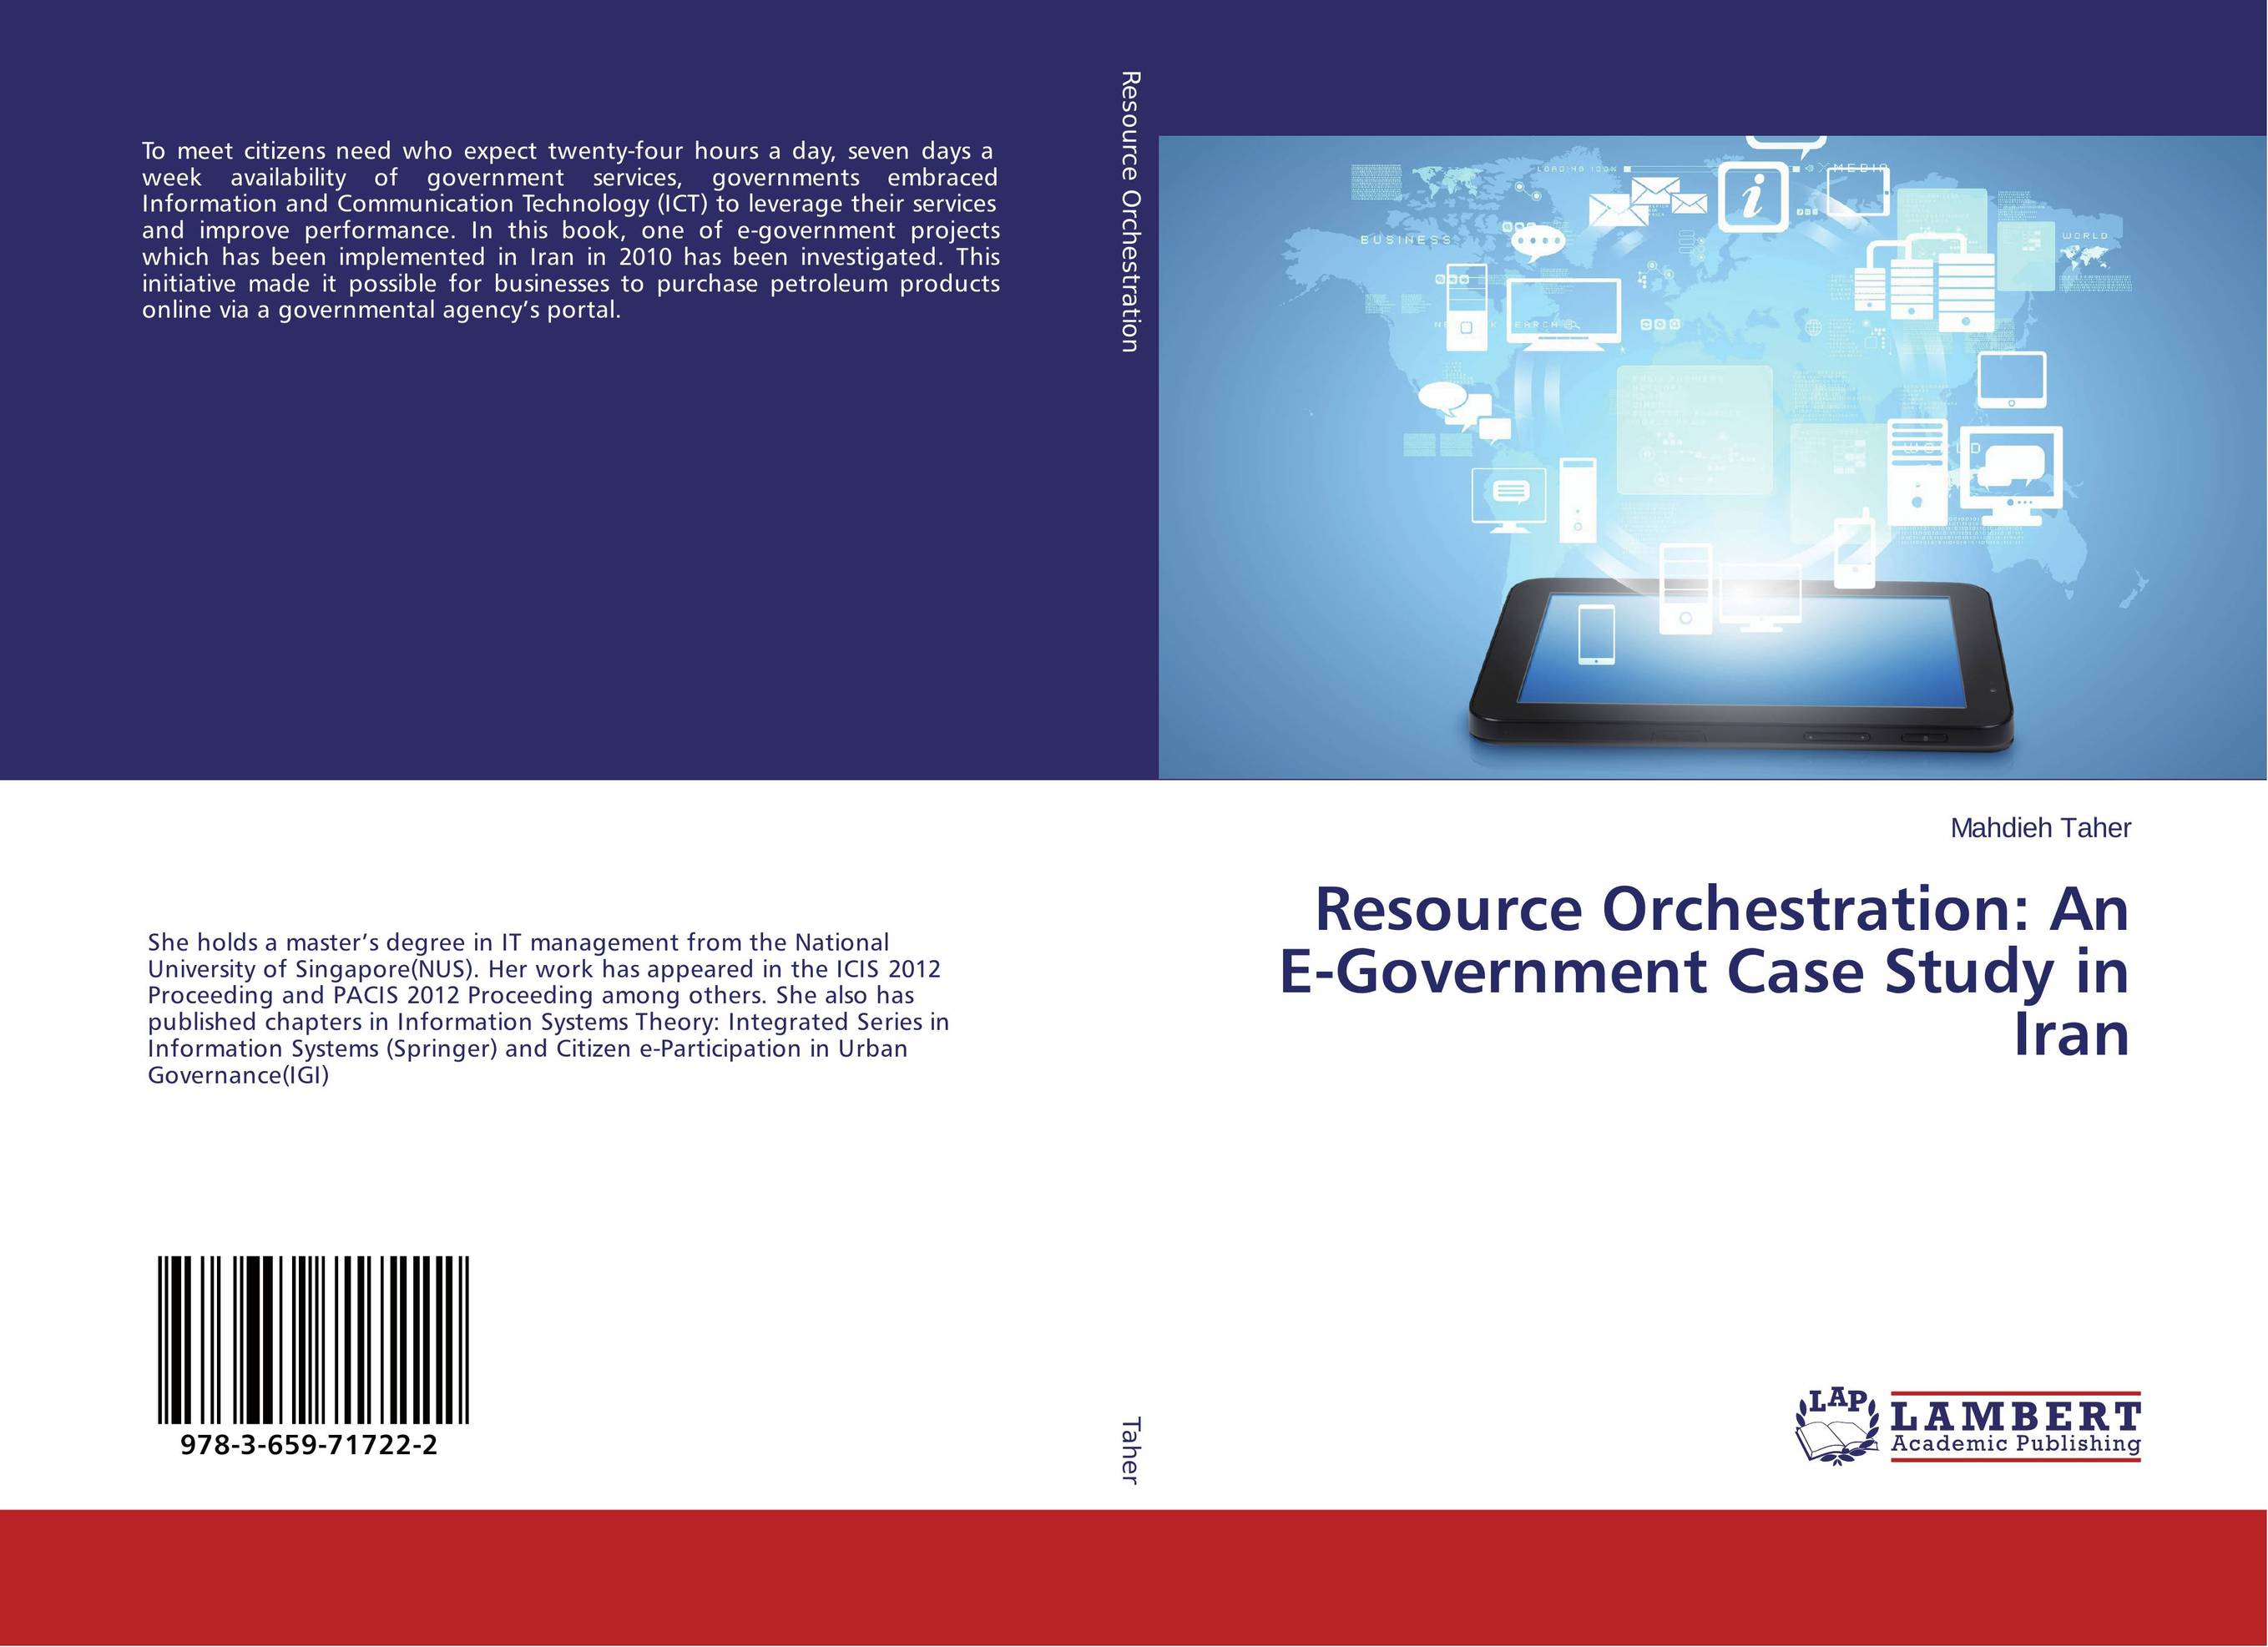 Resource Orchestration: An E-Government Case Study in Iran an ecological perspective to adolescent smoking study in iran